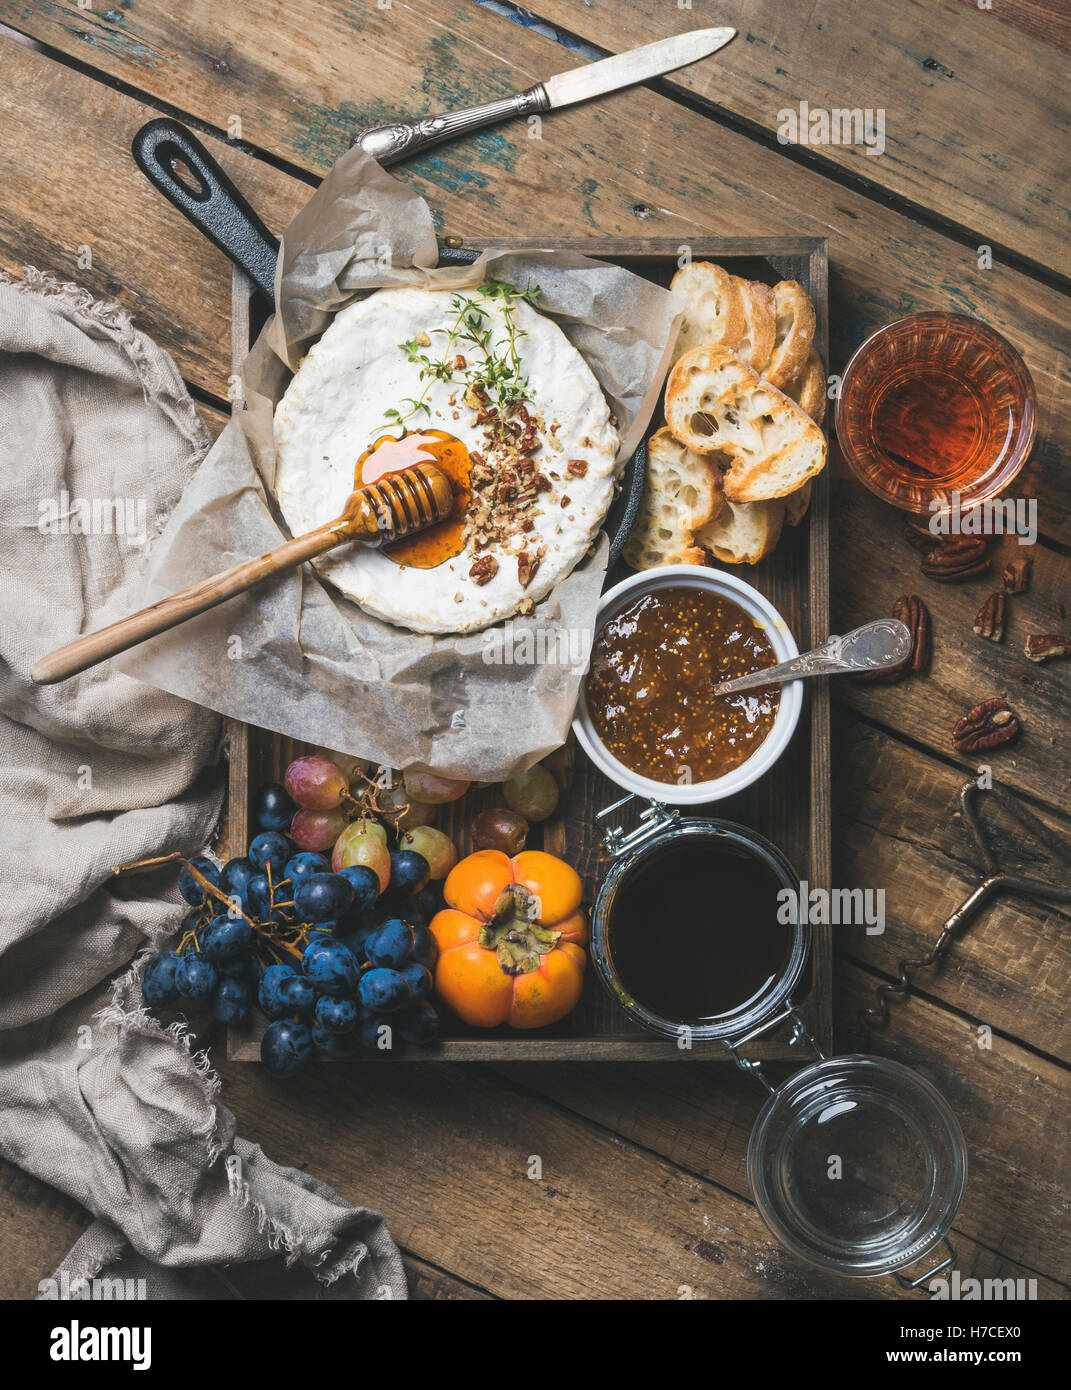 Cheese, fruit and wine set. Camembert in small pan with honey, nuts and herbs, grapes, persimmon, fig jam, baguette - Stock Image